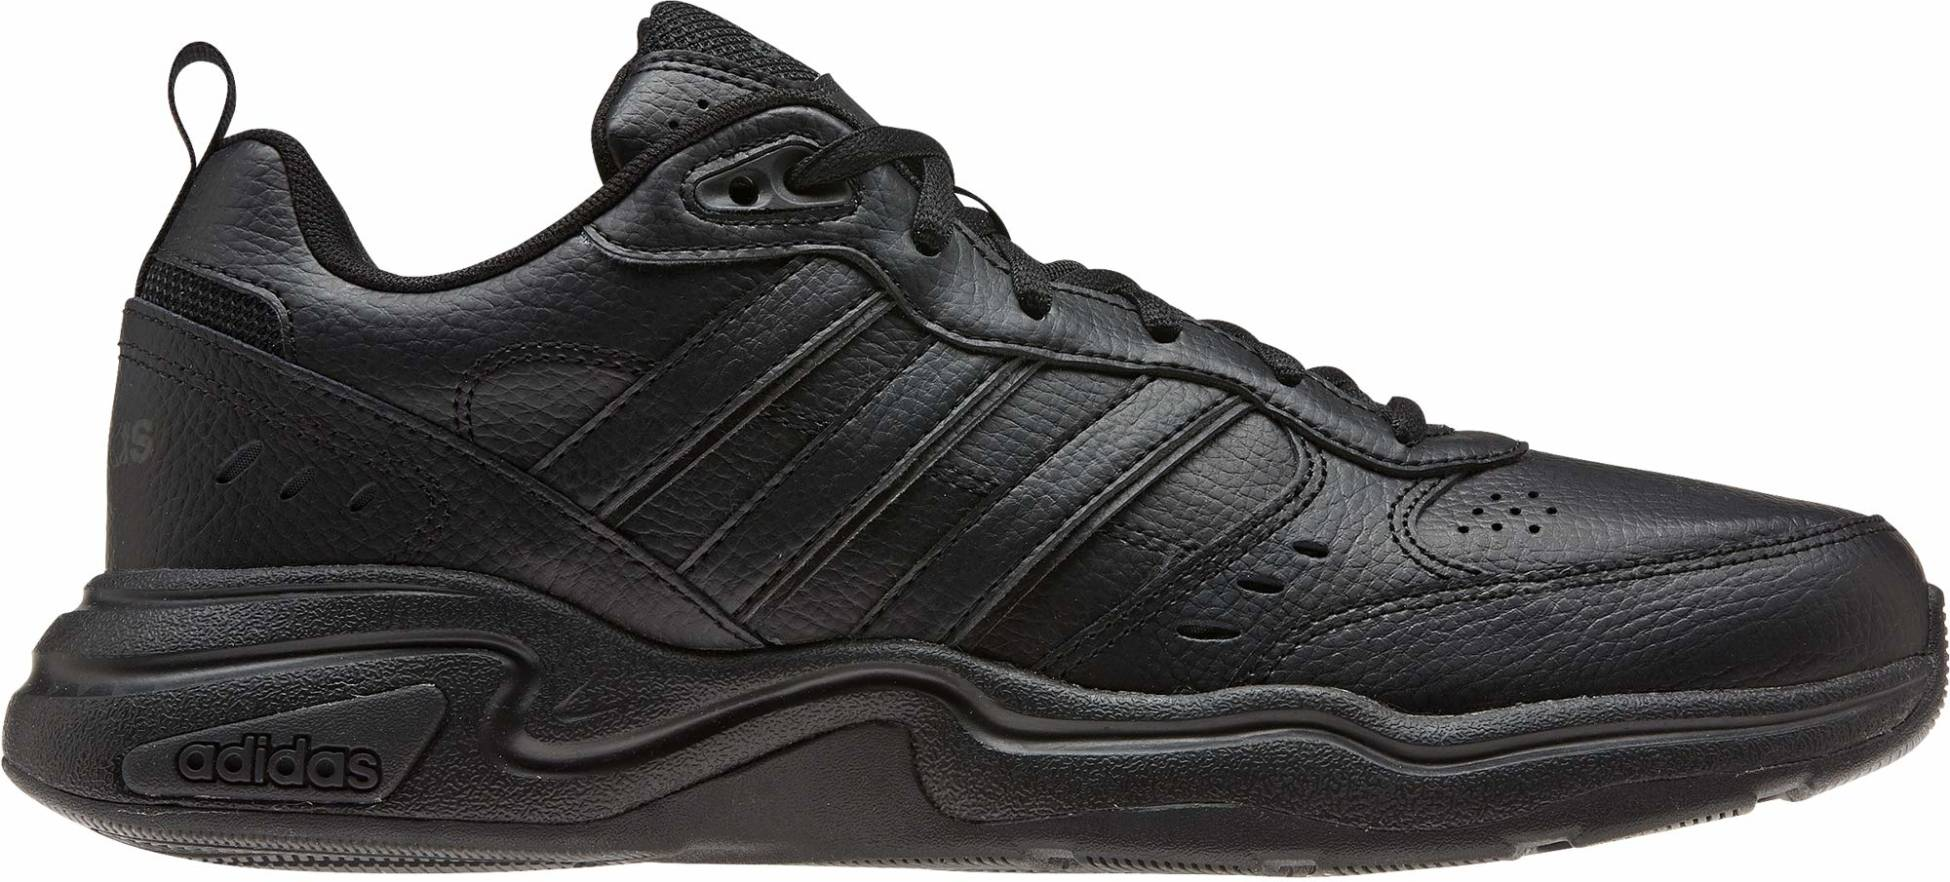 Adidas Strutter sneakers in 6 colors (only $38) | RunRepeat